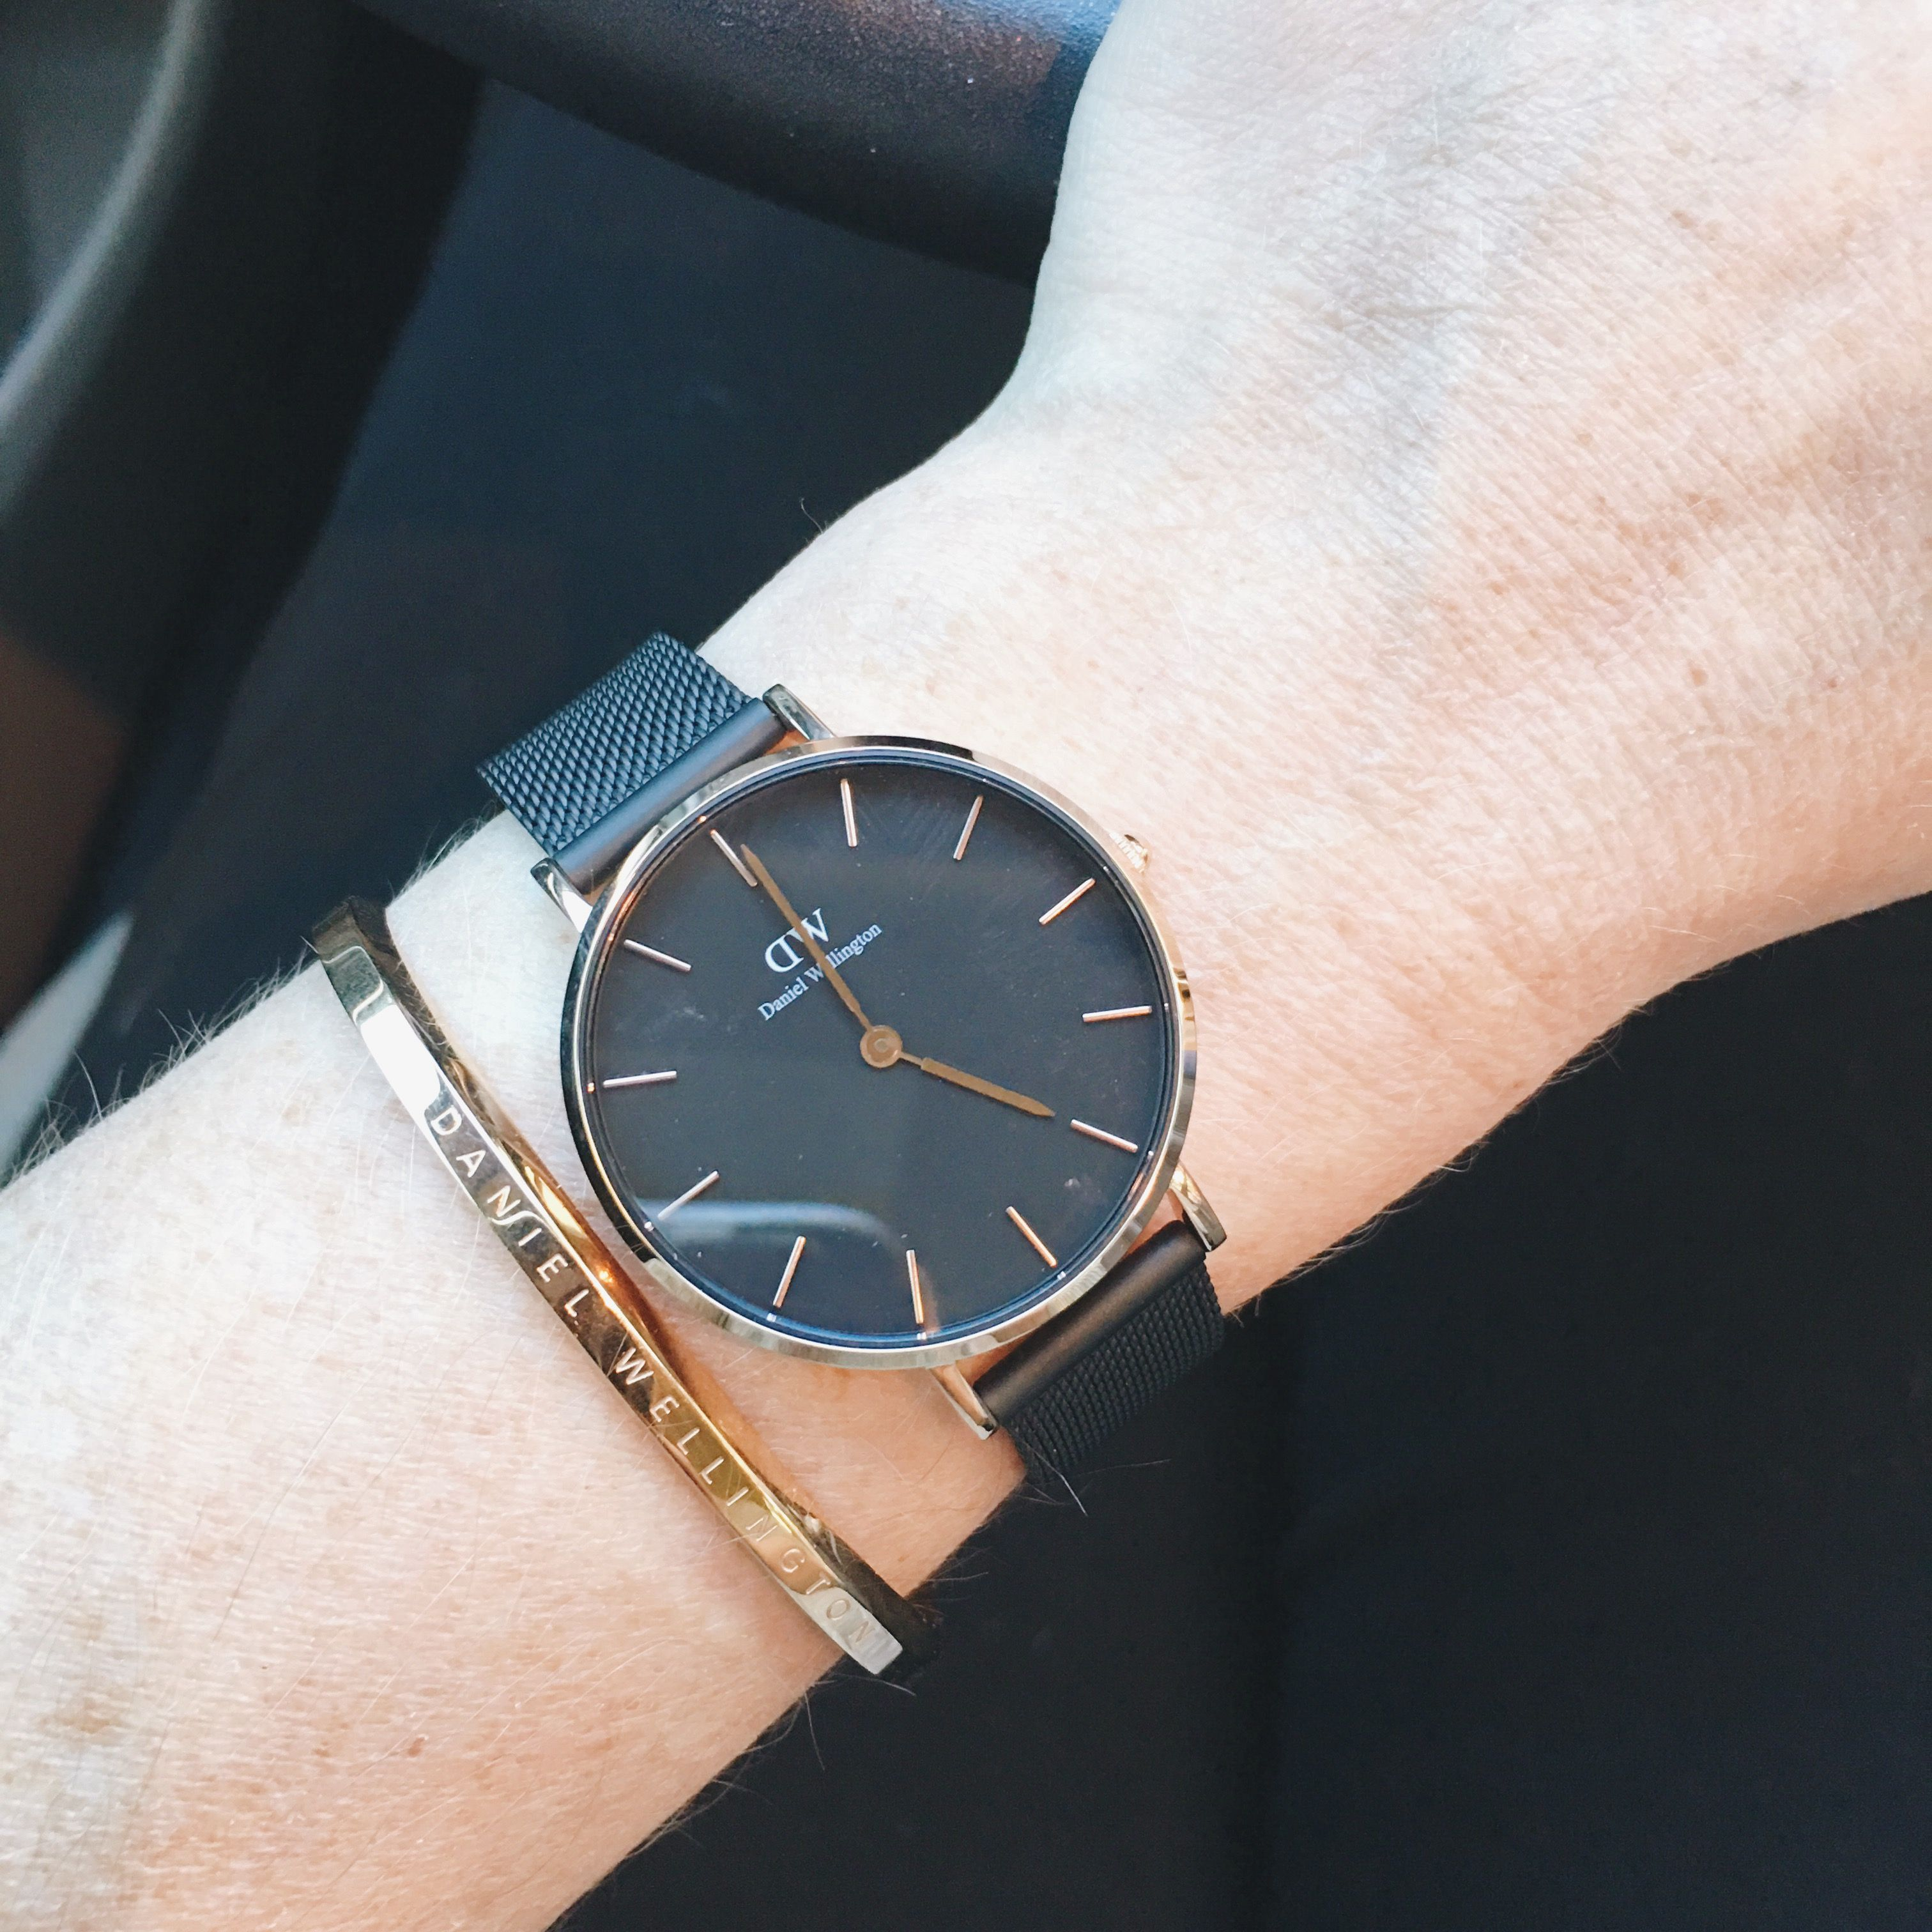 dfb27ce11dad Meet the new Daniel Wellington watch...the Classic Petite Ashfield! It  comes in either rose gold or silver. Use code CLASSYYETTRENDY15 for 15% off  your ...